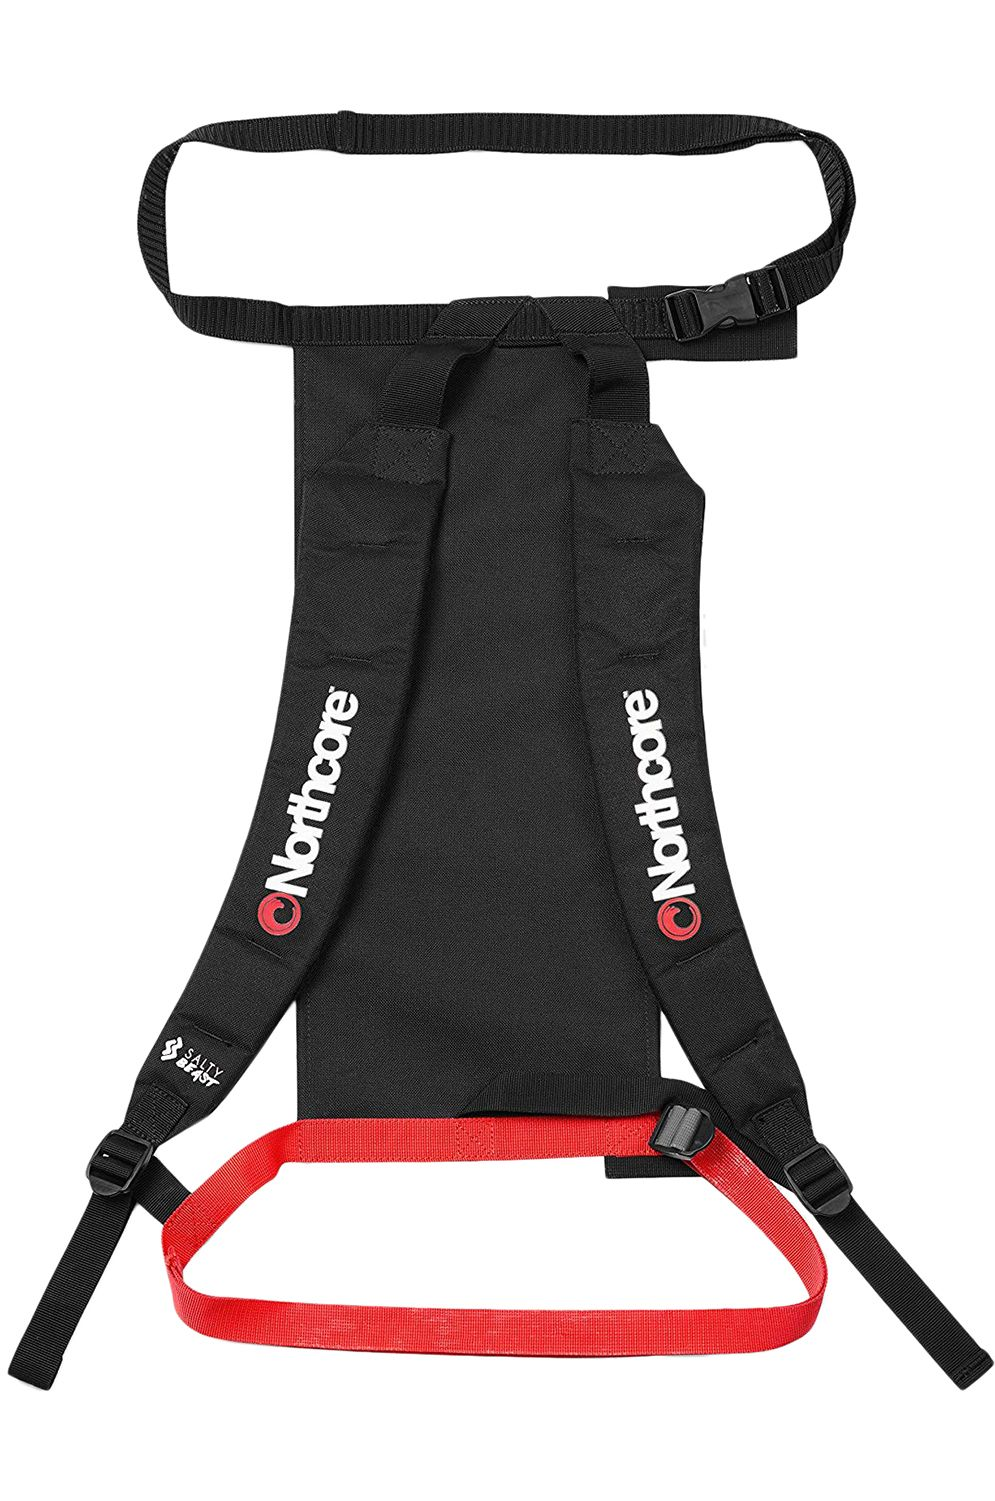 Northcore Rack SURF STRAP- BOARD CARRY Assorted